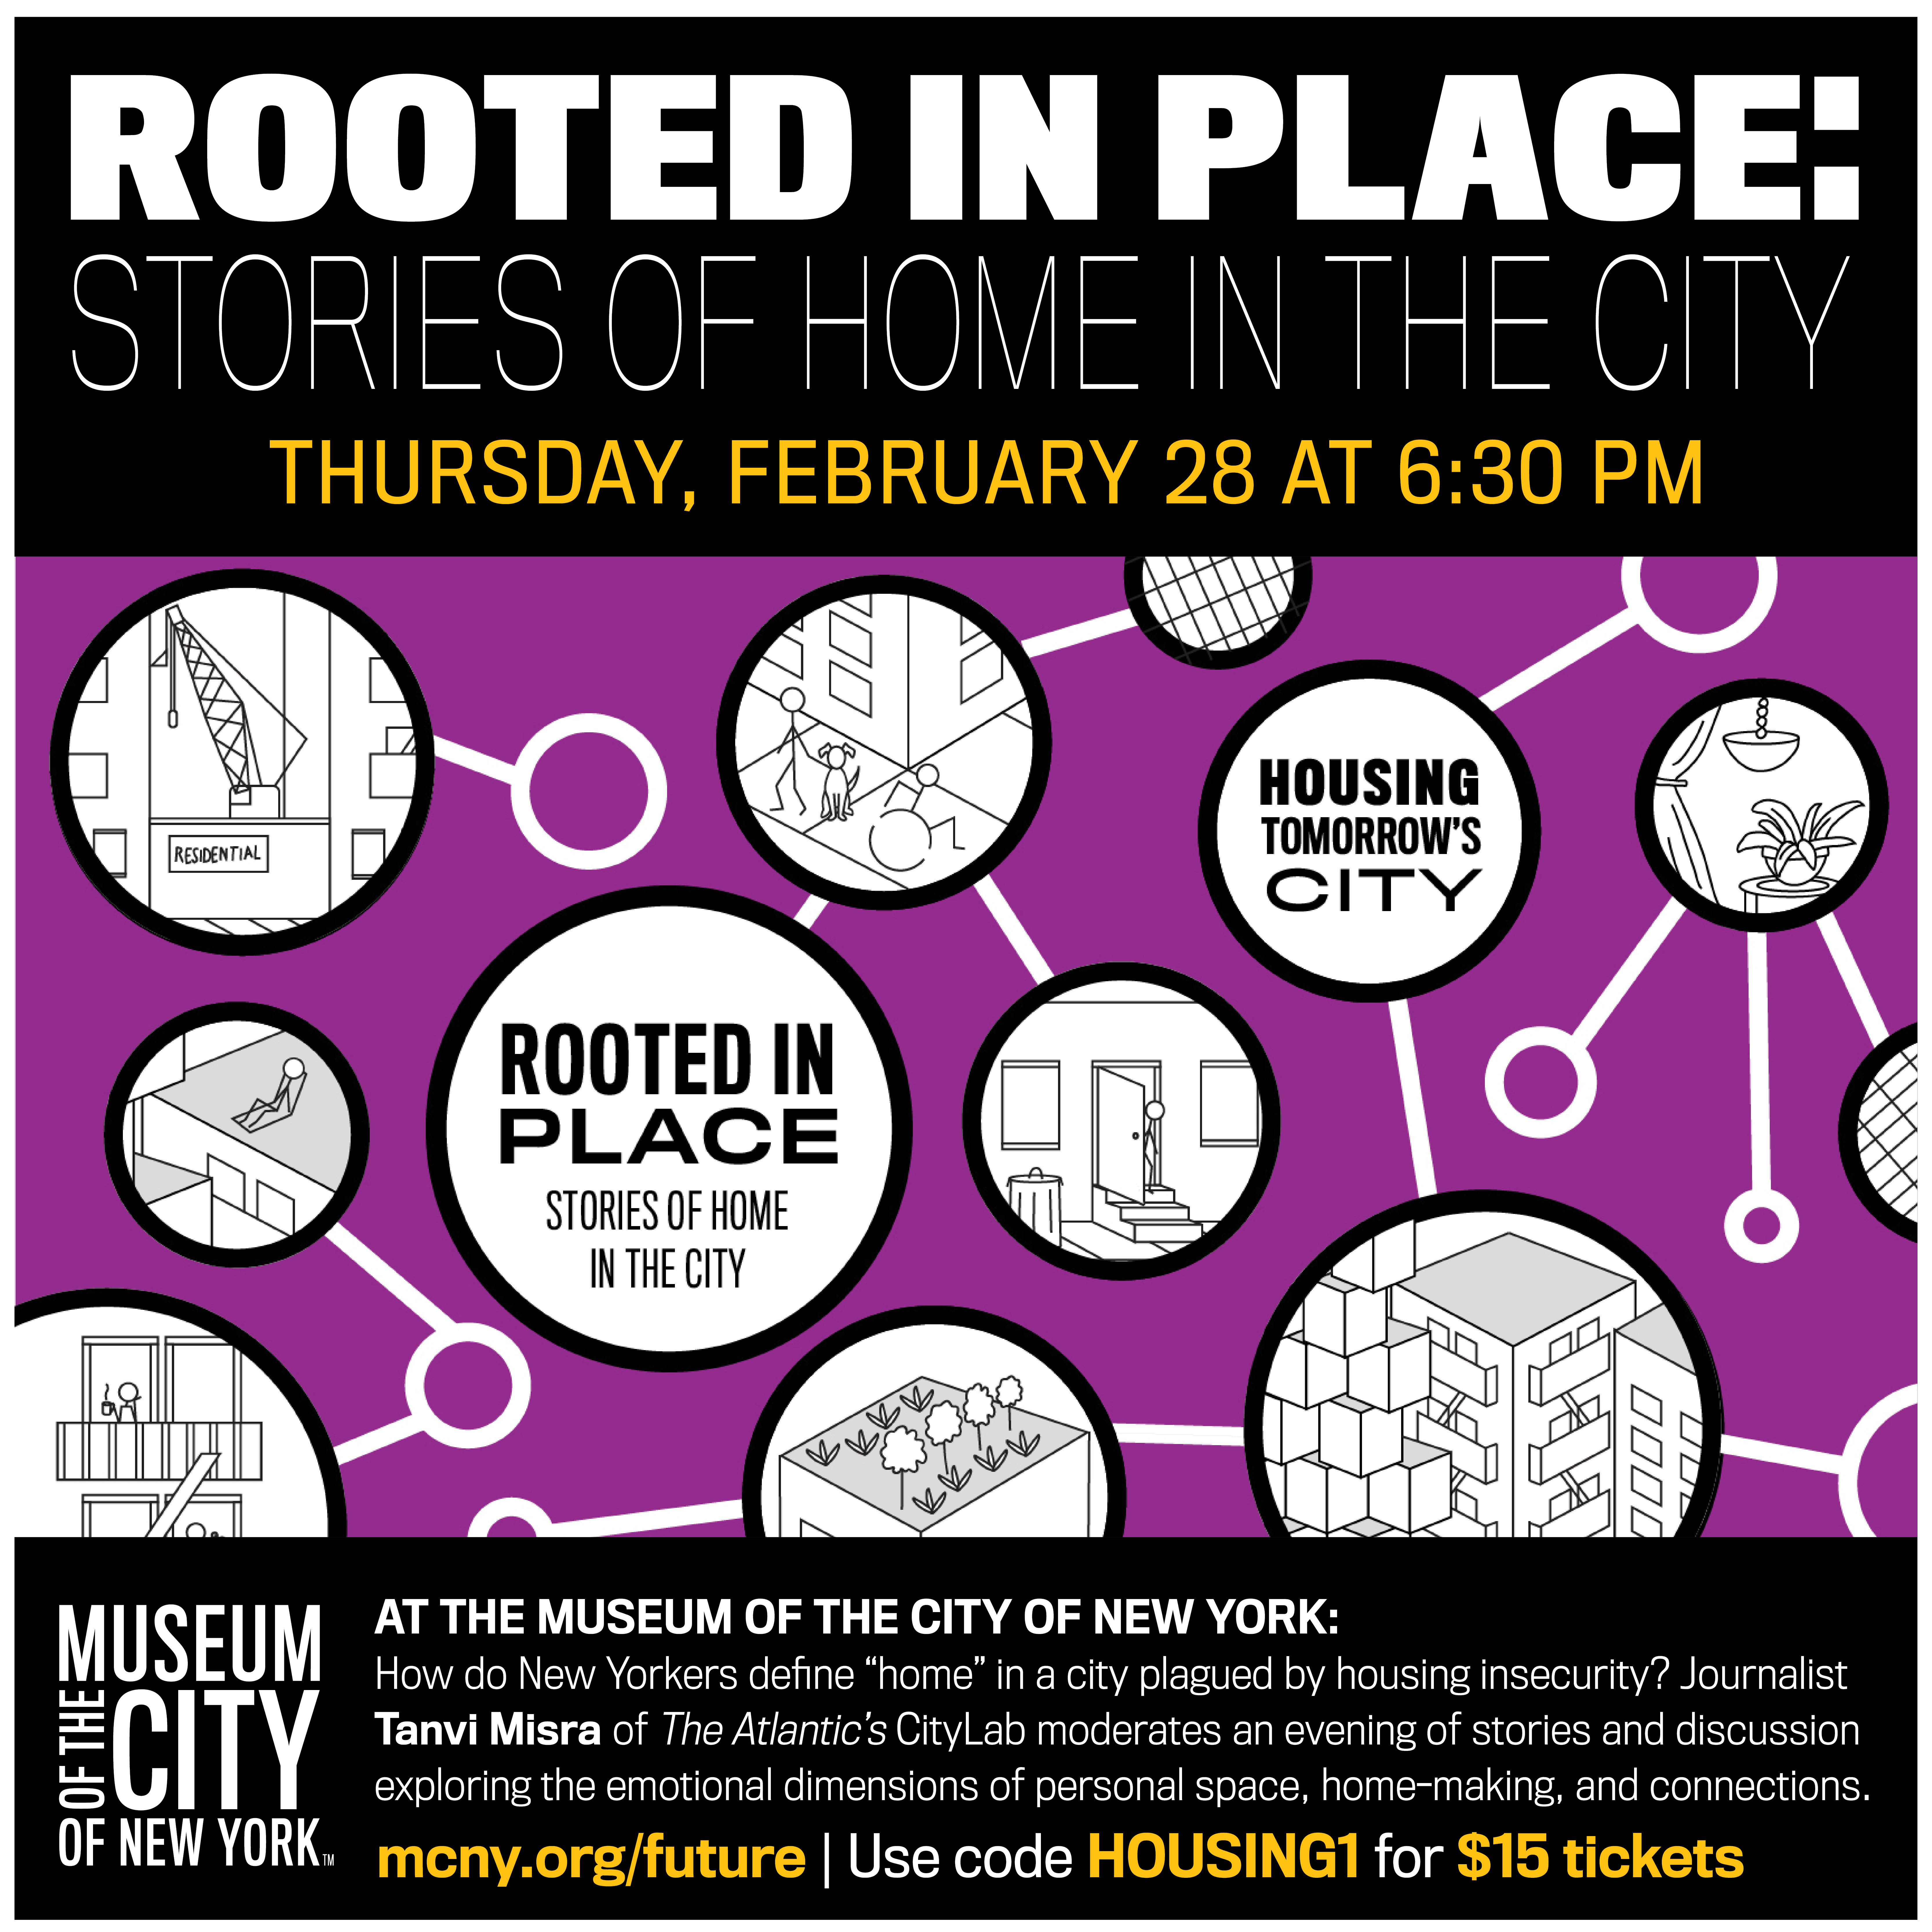 Rooted in Place: Stories of Home in the City